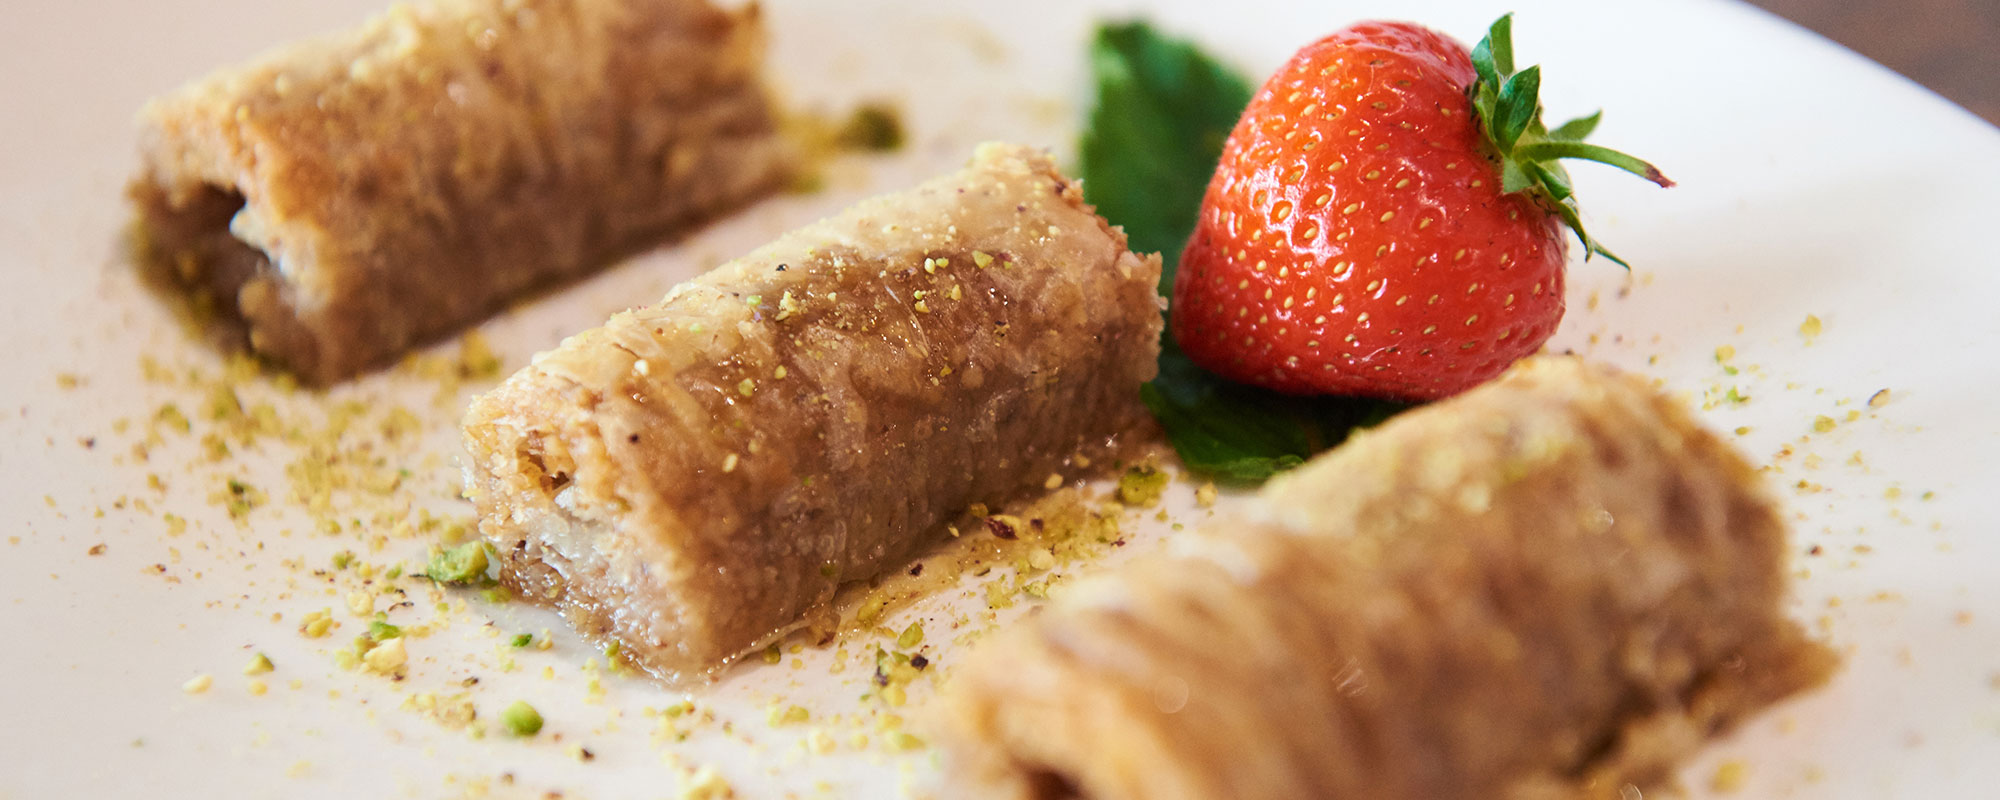 Liman restaurant image of Mediterranean food on plate with strawberry